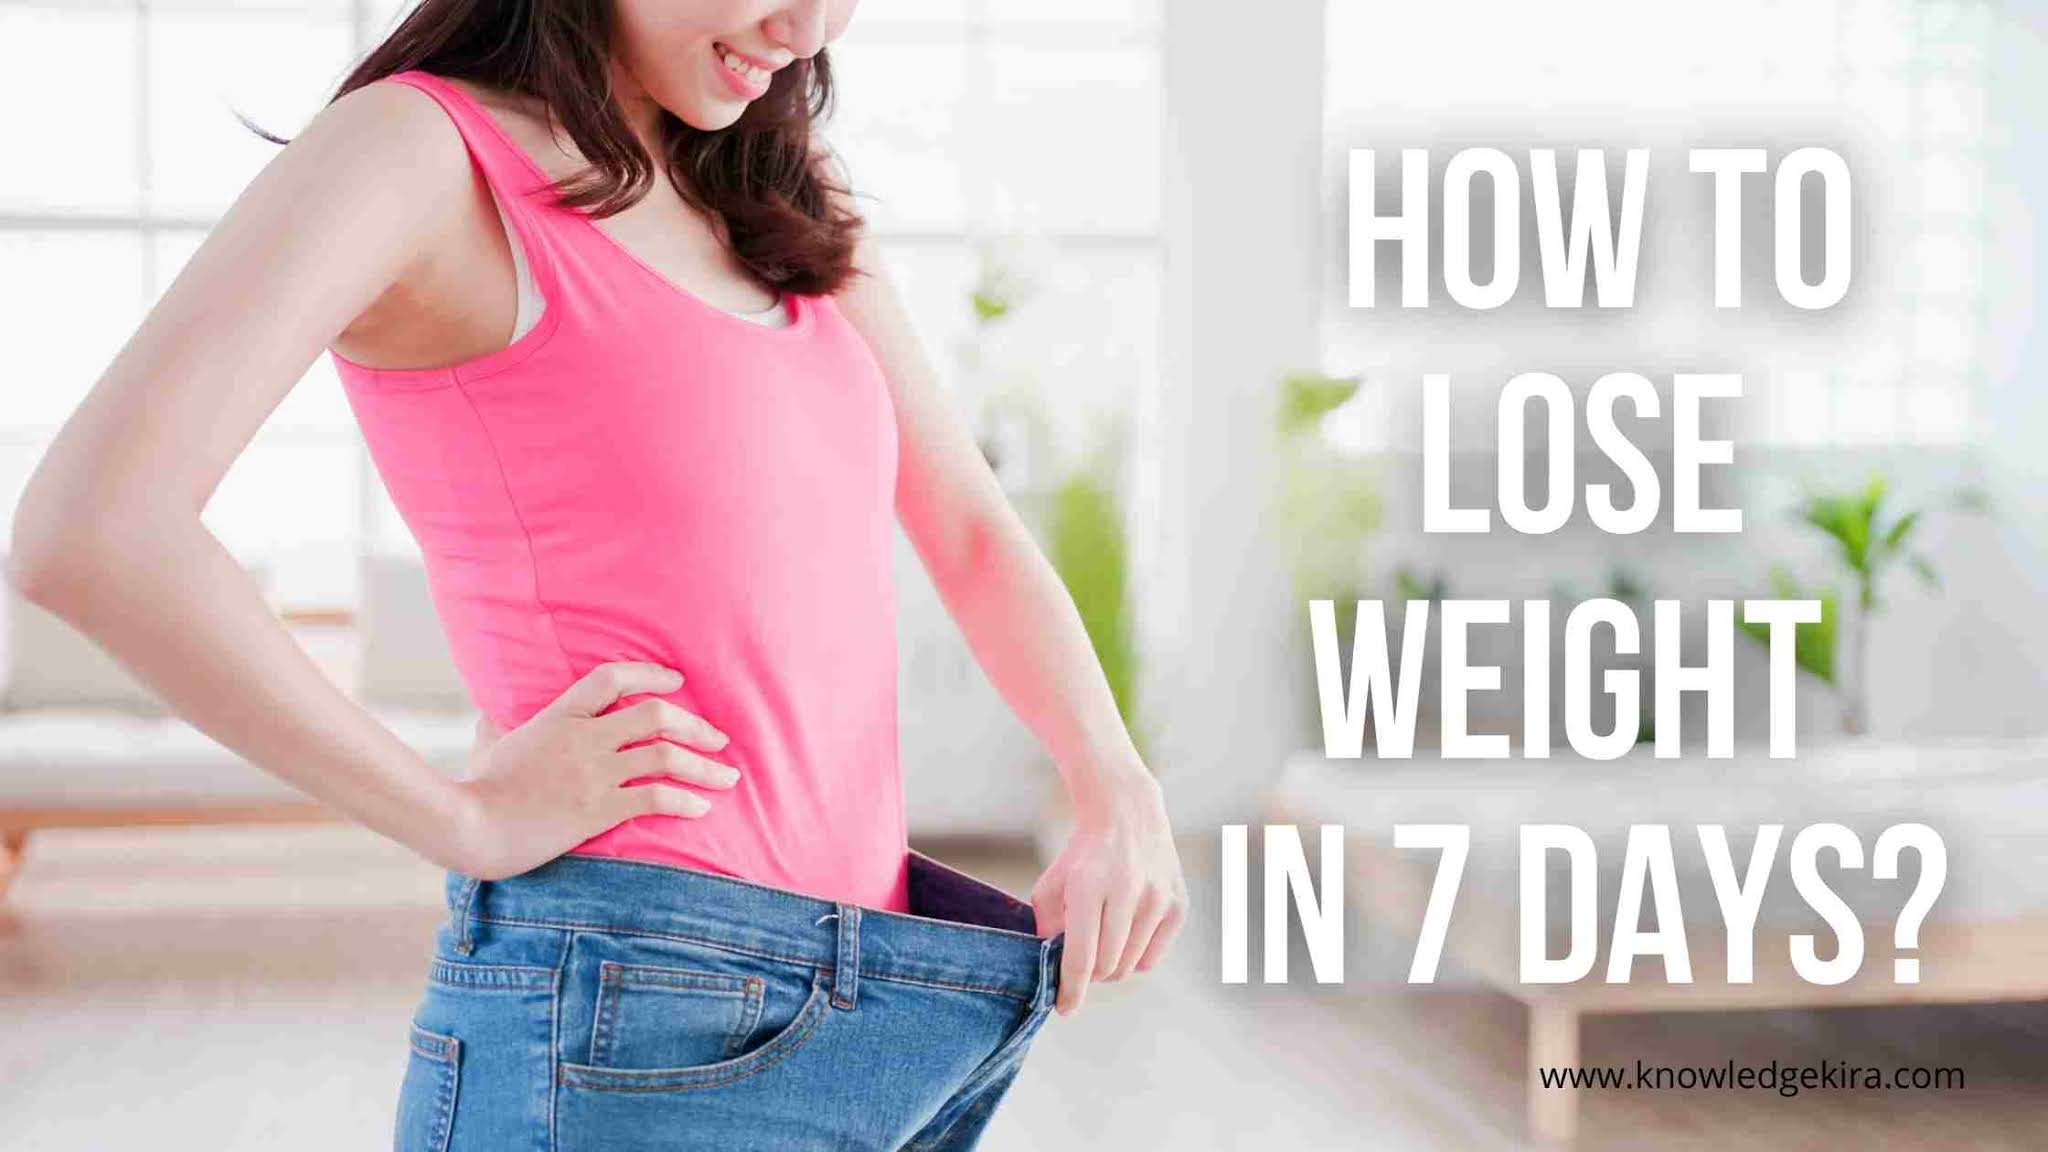 How to Lose Weight in 7 Days: Top 7 Tips That Work